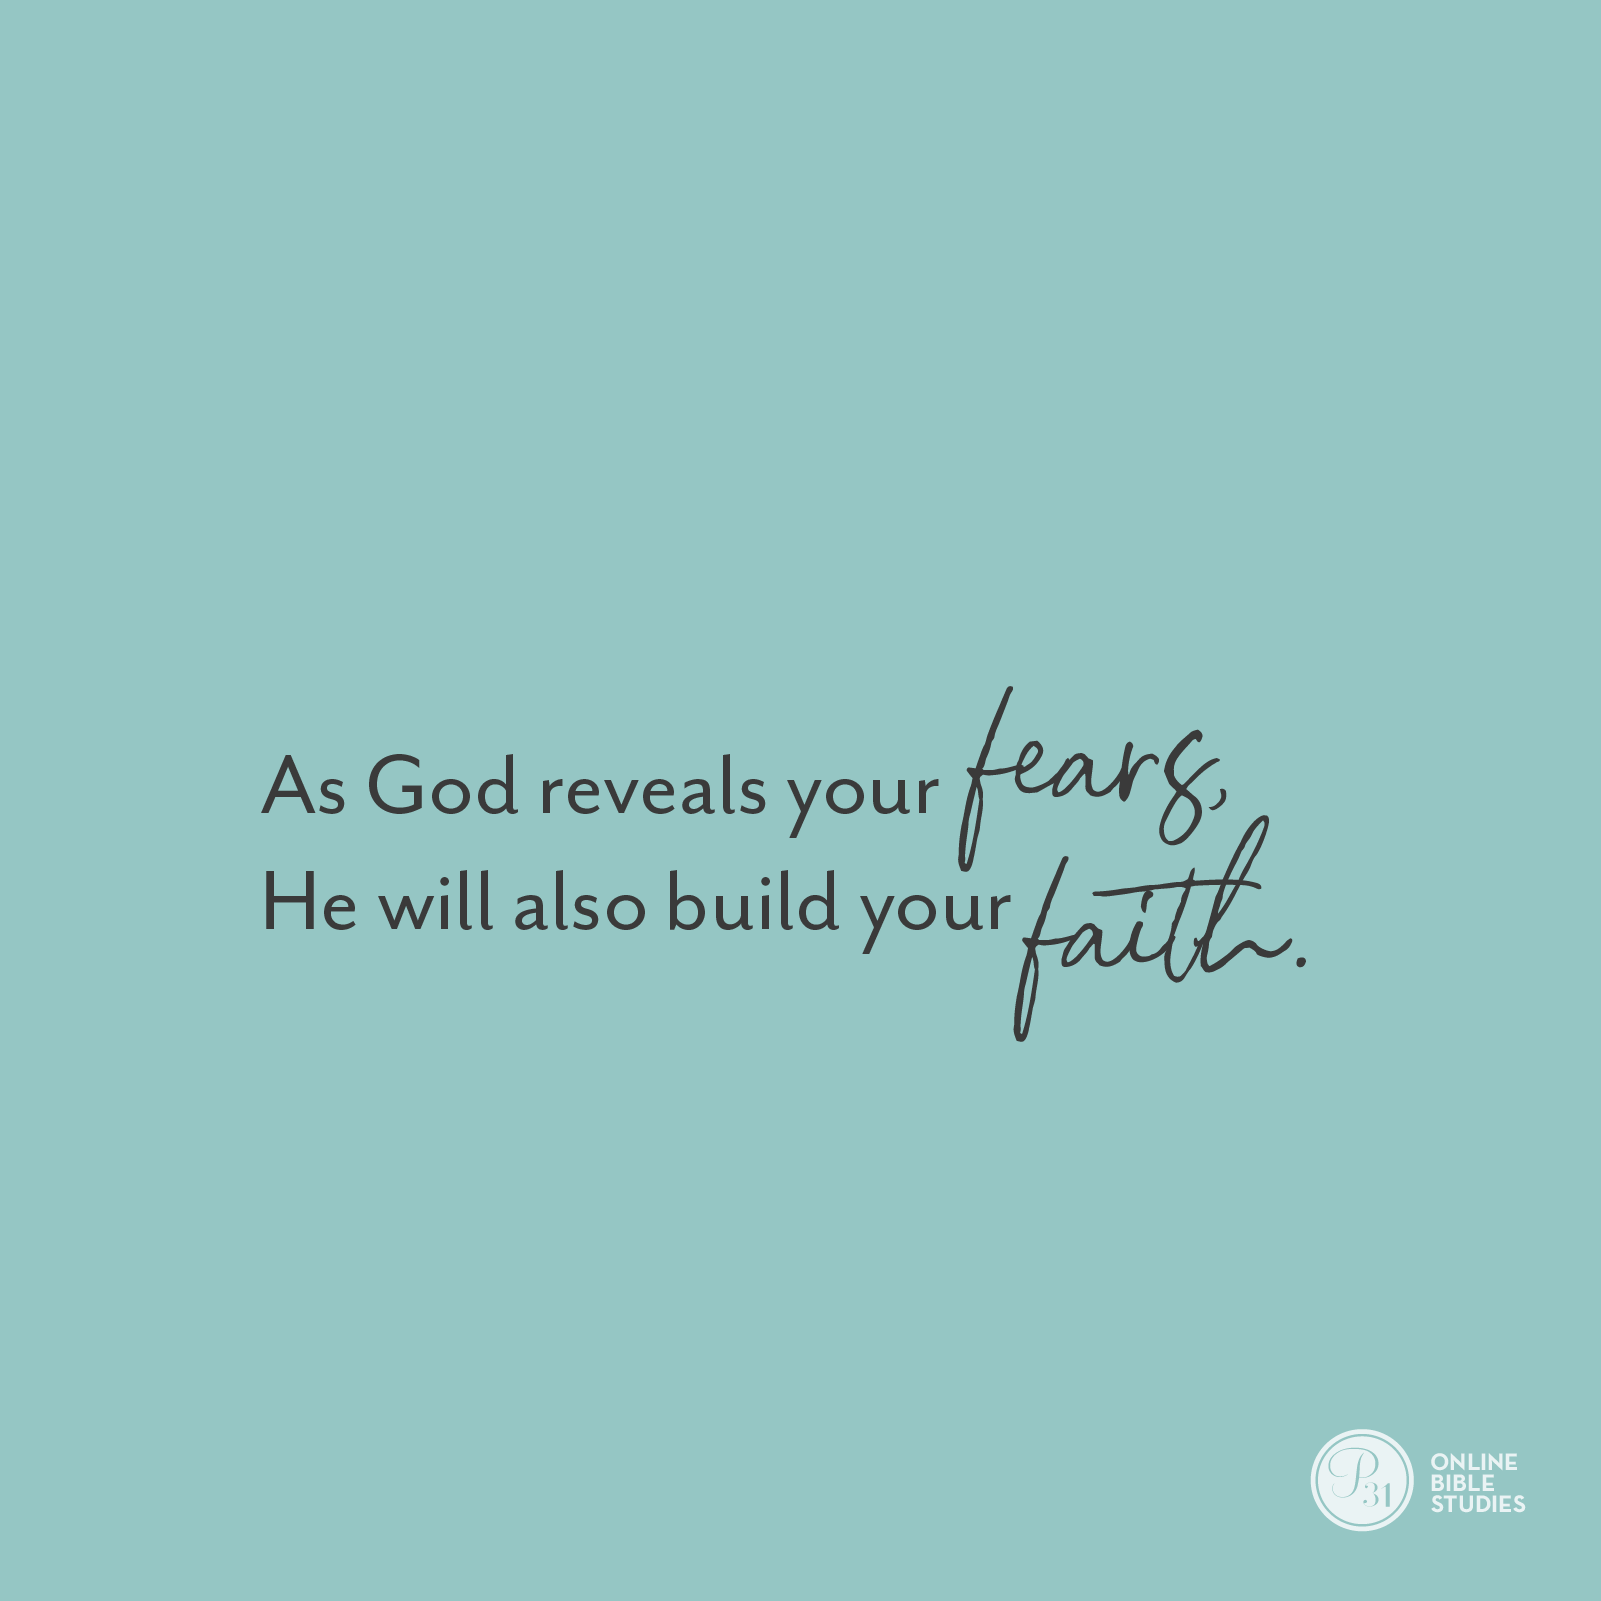 """As God reveals your fears, He will build your faith."" - Craig Groeschel  #DangerousPrayers 